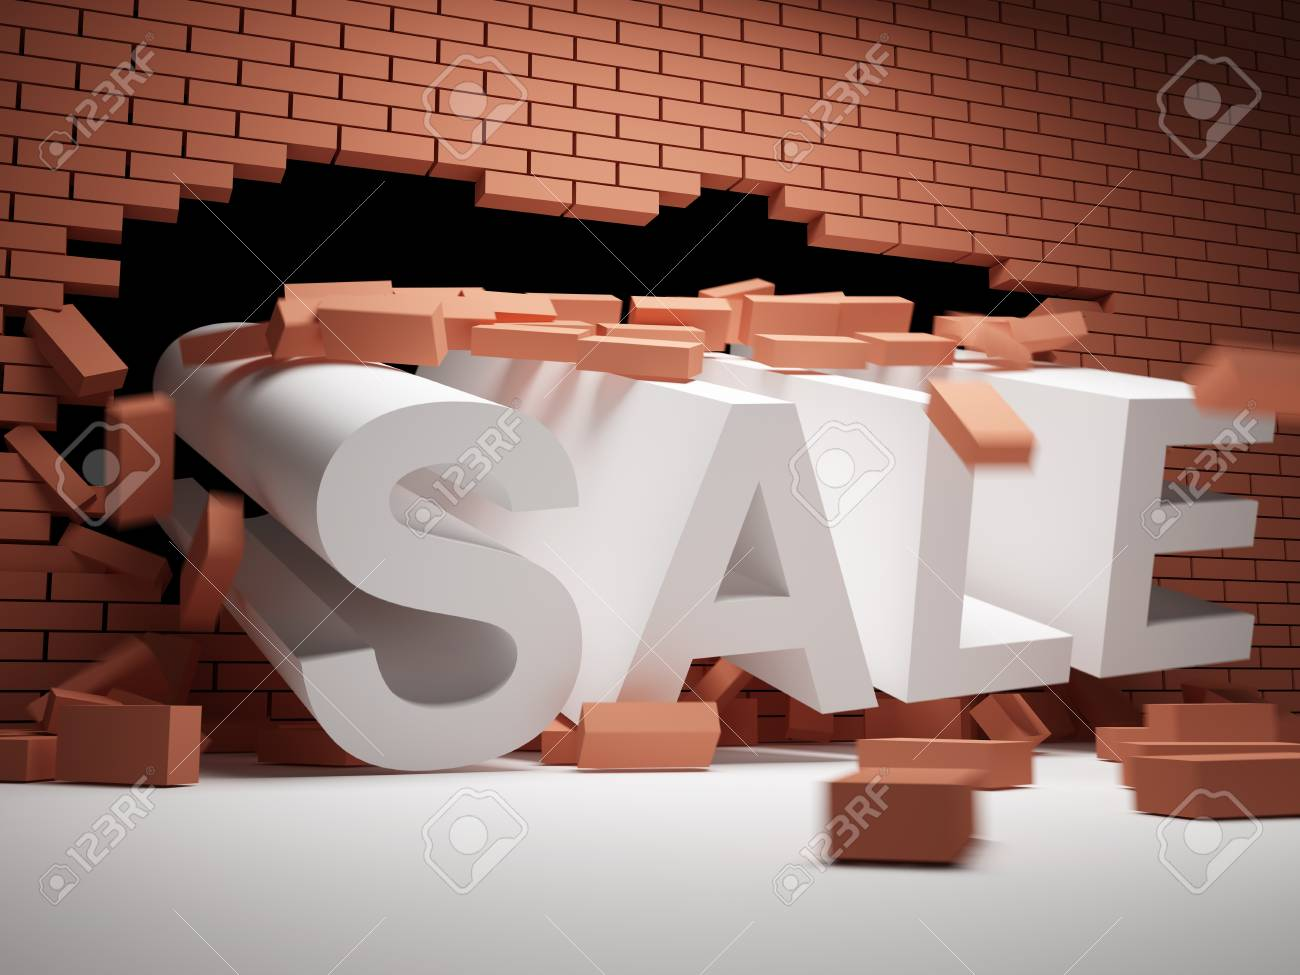 Brick wall collapsed big sales Stock Photo - 12878923